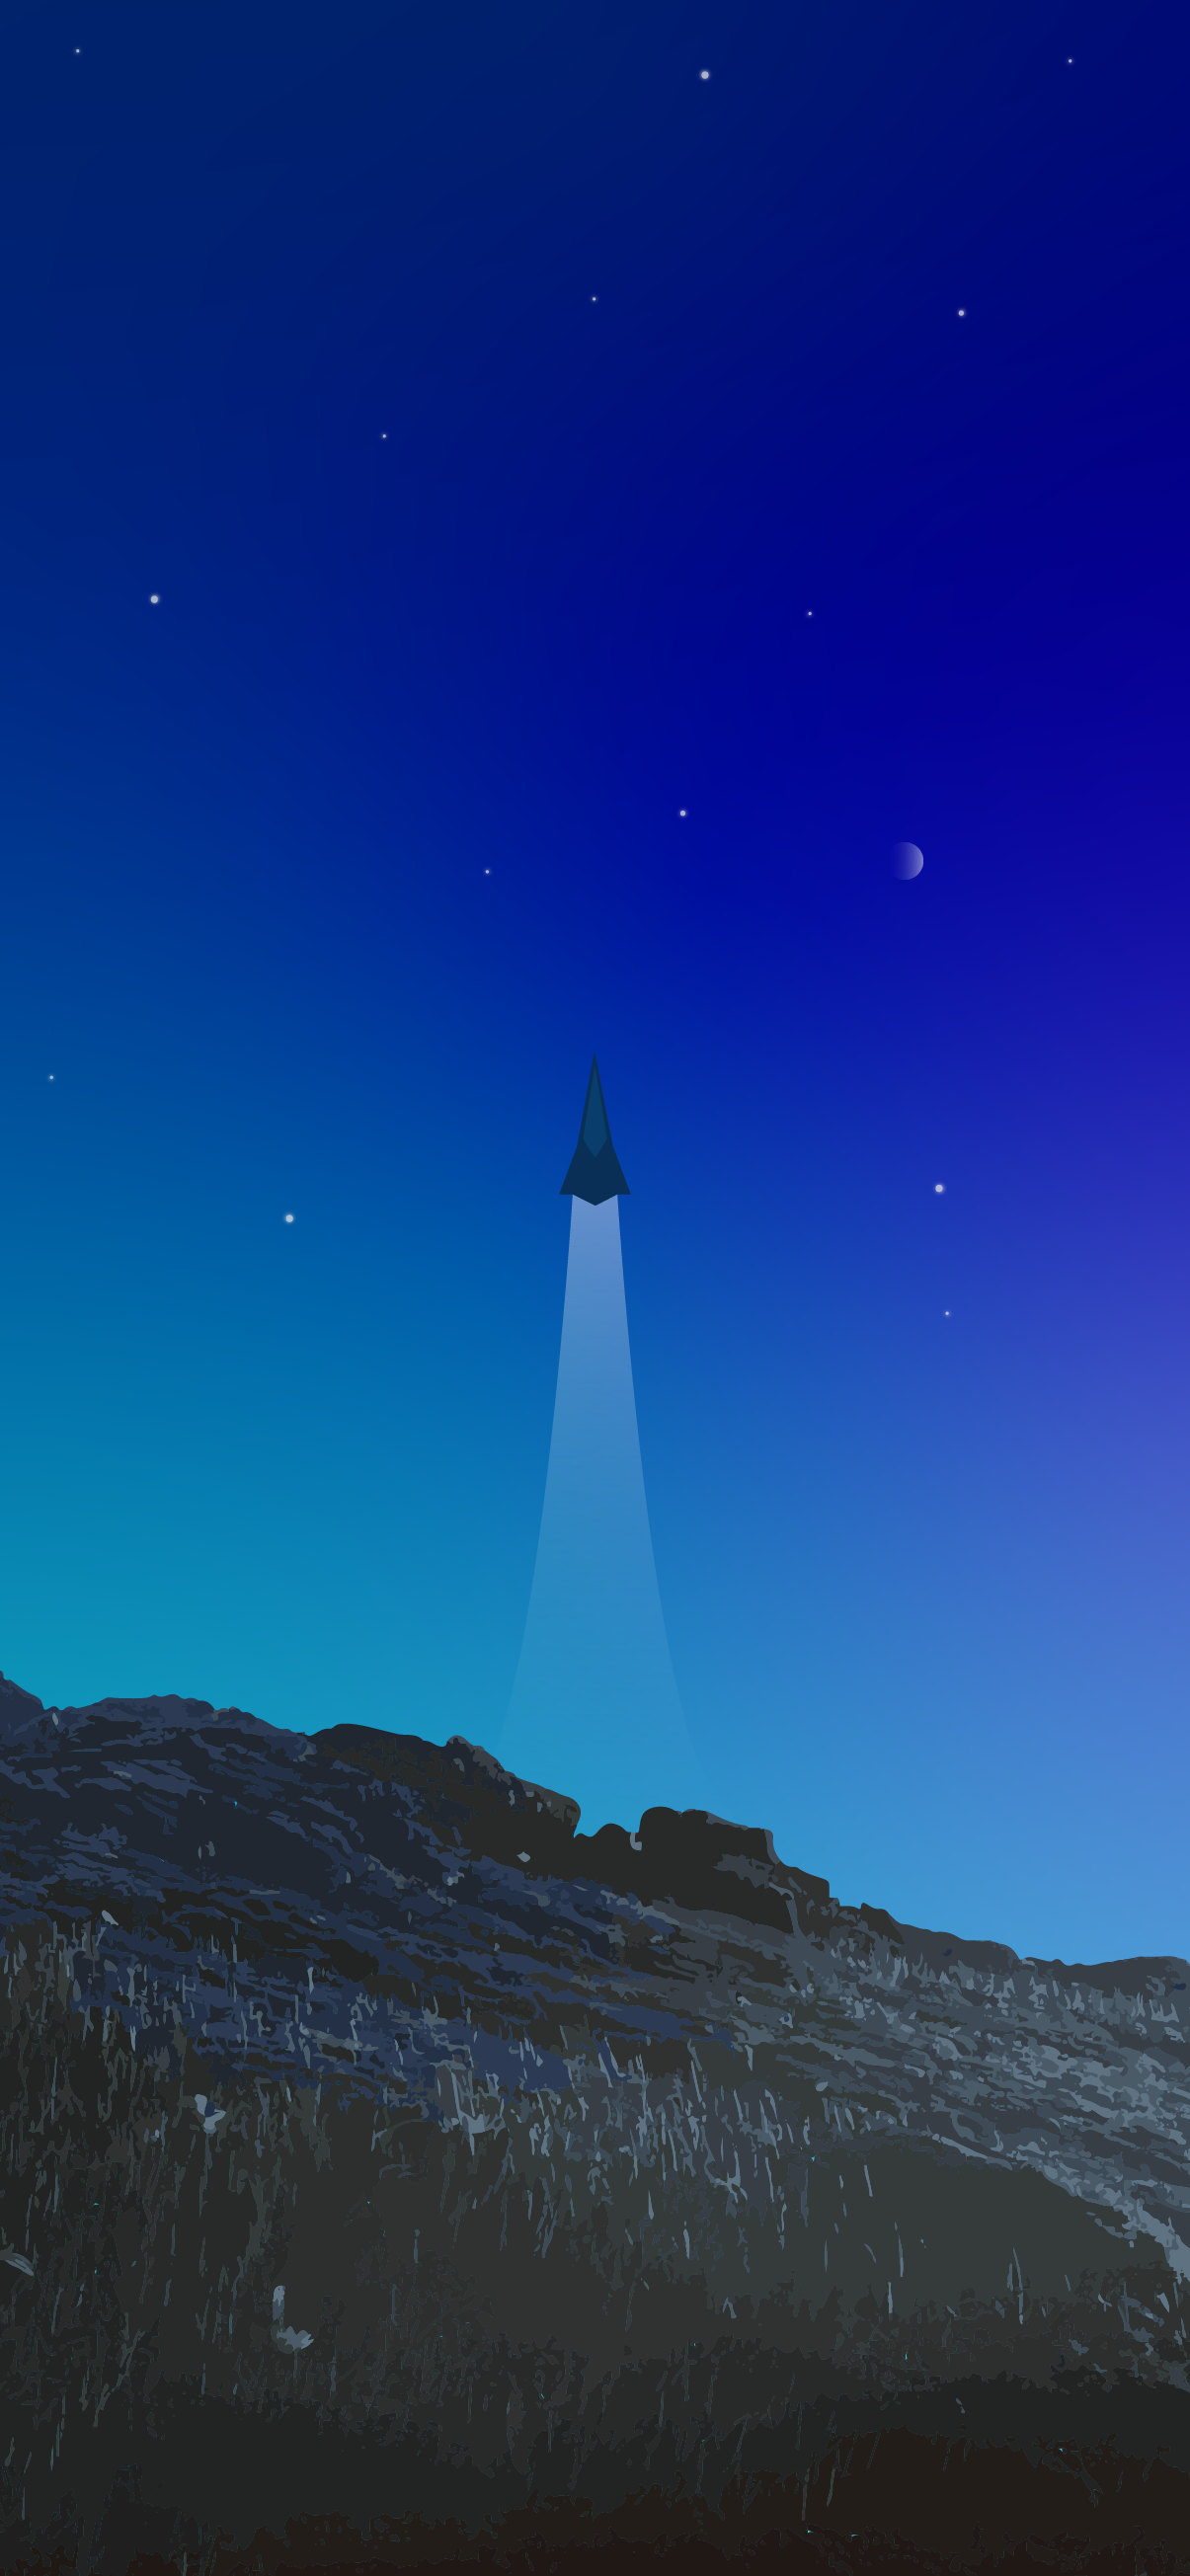 MINIMALIST WALLPAPER IPHONE 4K ROCKET LAUNCH